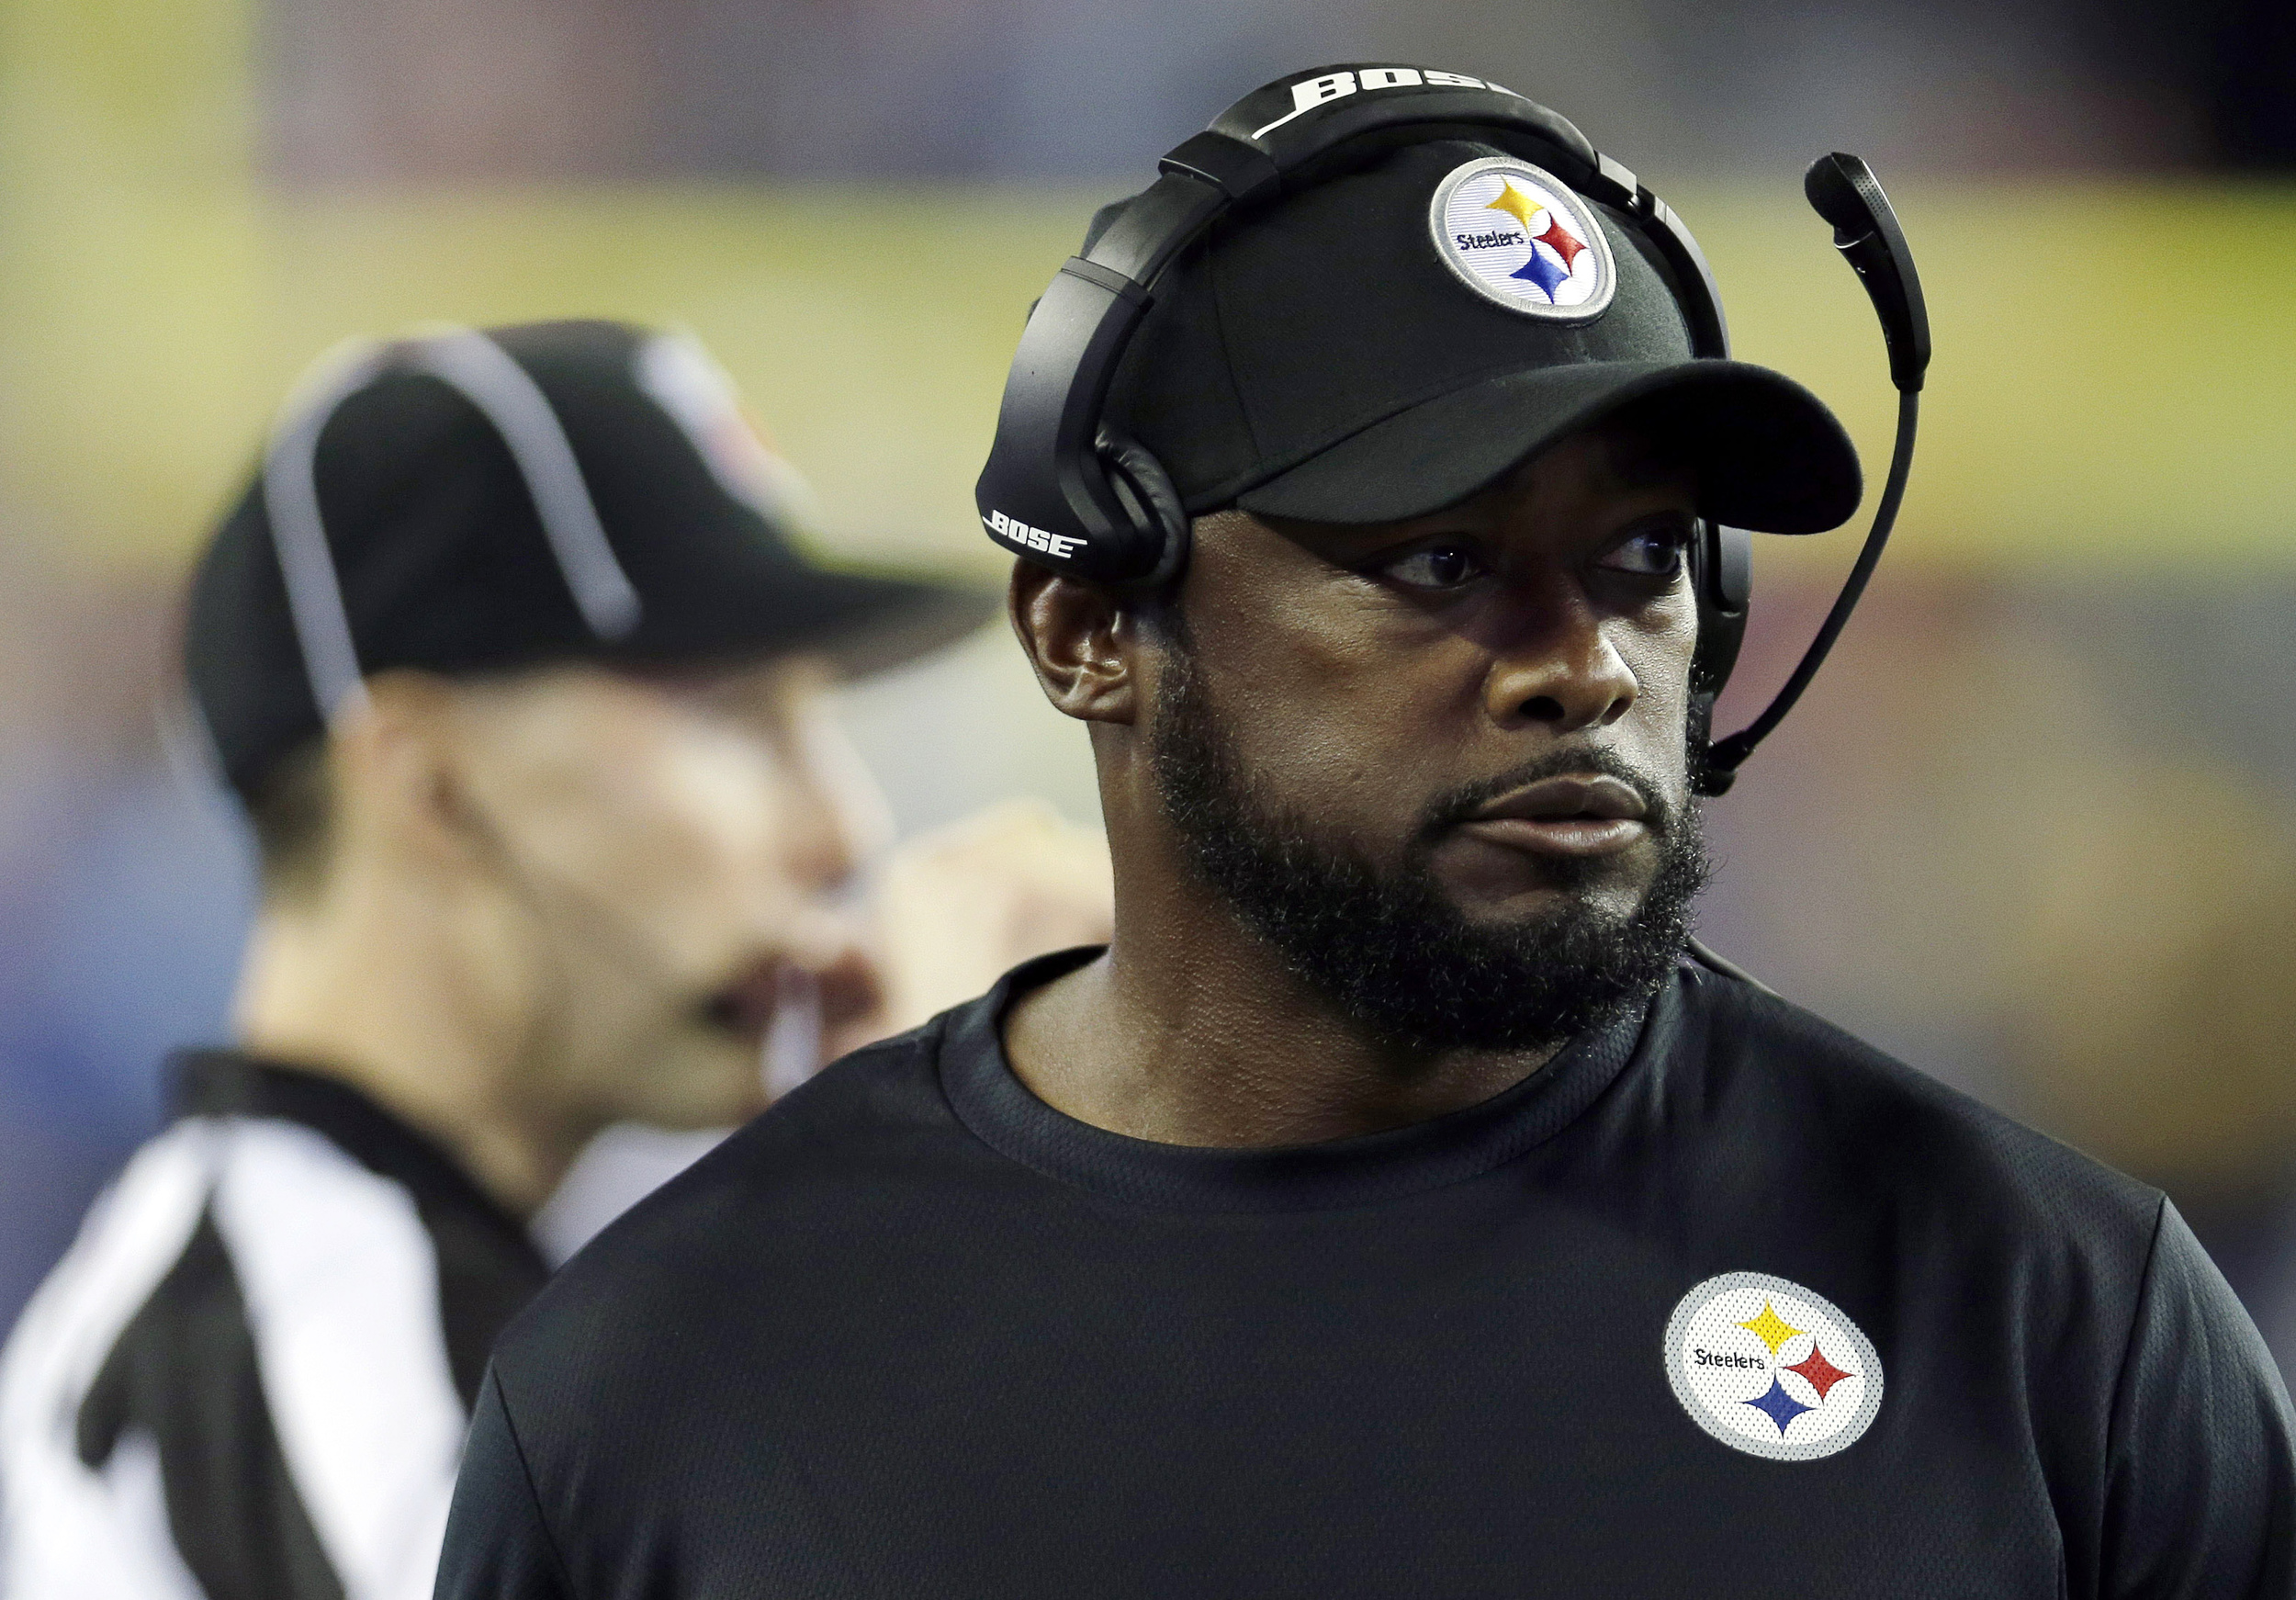 In this photo taken Thursday, Sept. 10, 2015, Pittsburgh Steelers head coach Mike Tomlin watches action from the sideline in the first half of an NFL football game against the New England Patriots in Foxborough, Massachusetts. (Charles Krupa/AP)